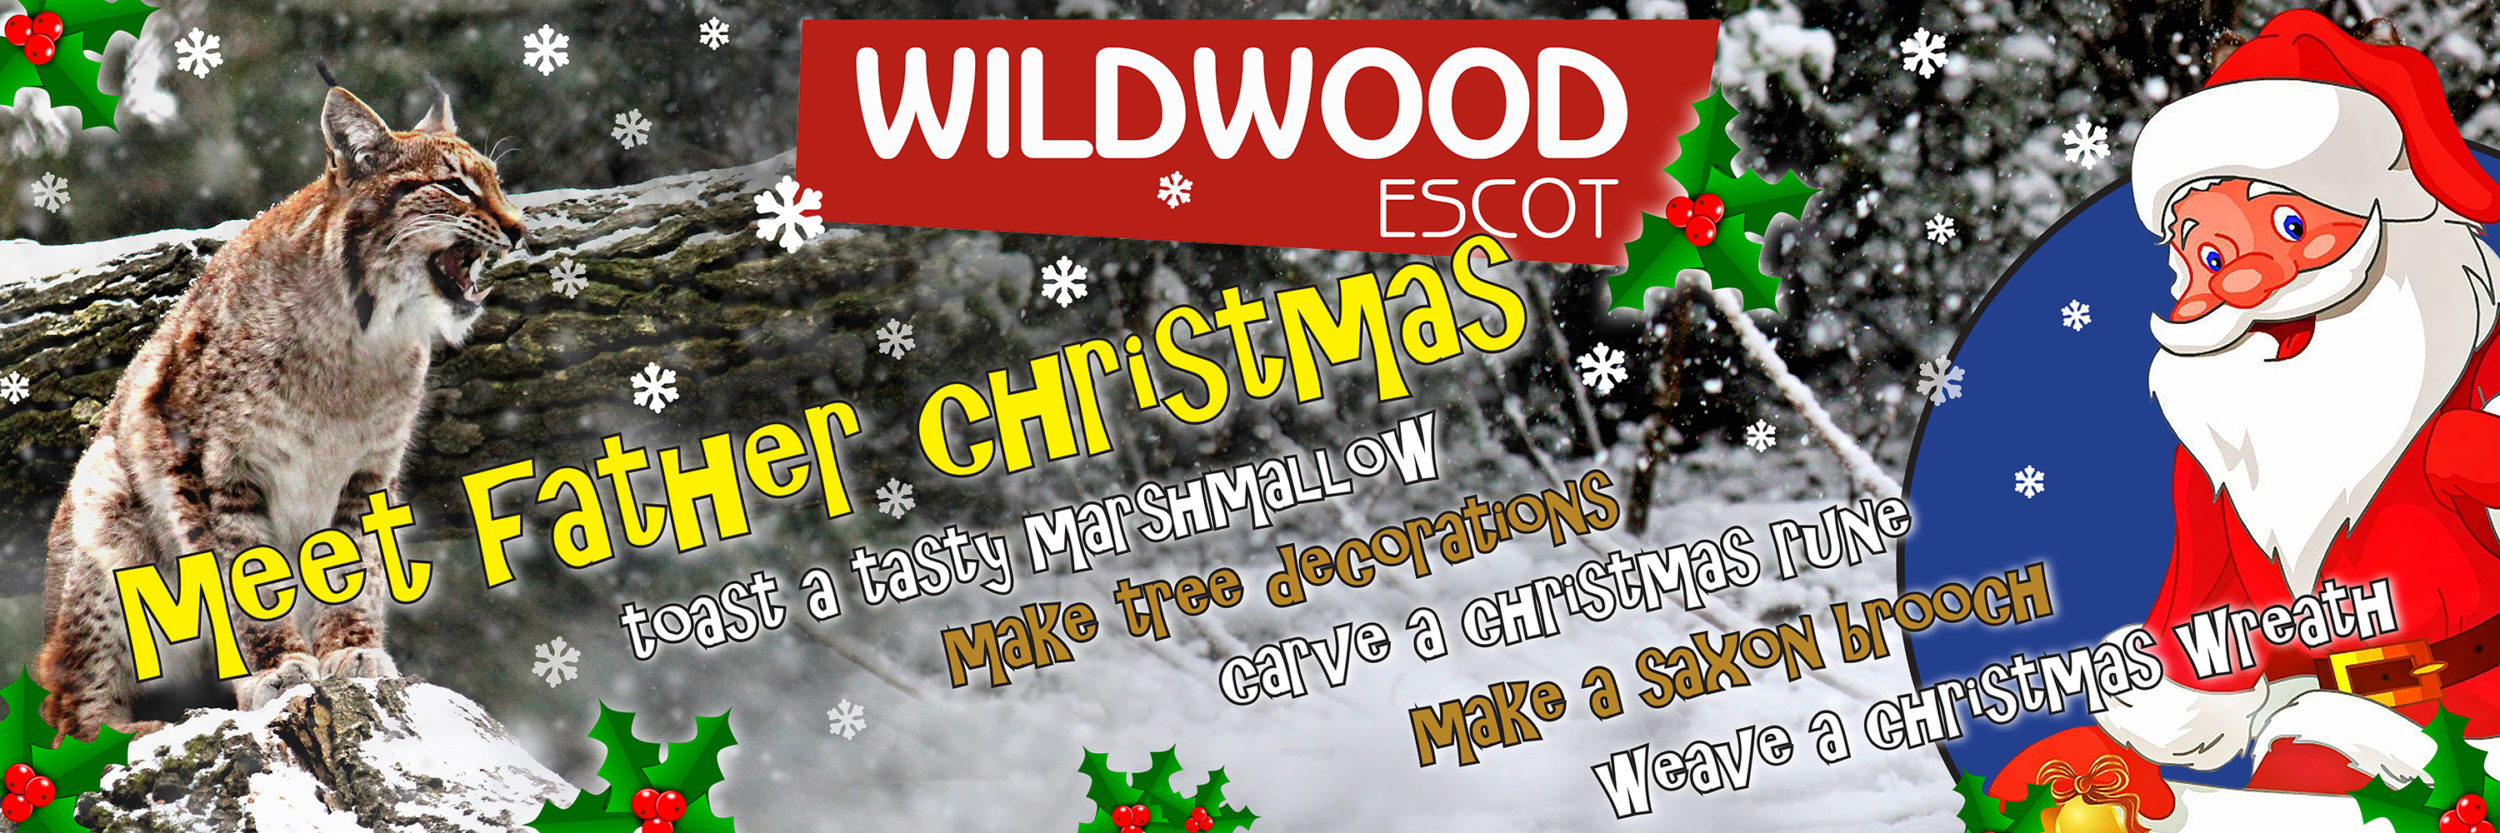 Christmas Activities | Wildwood Escot